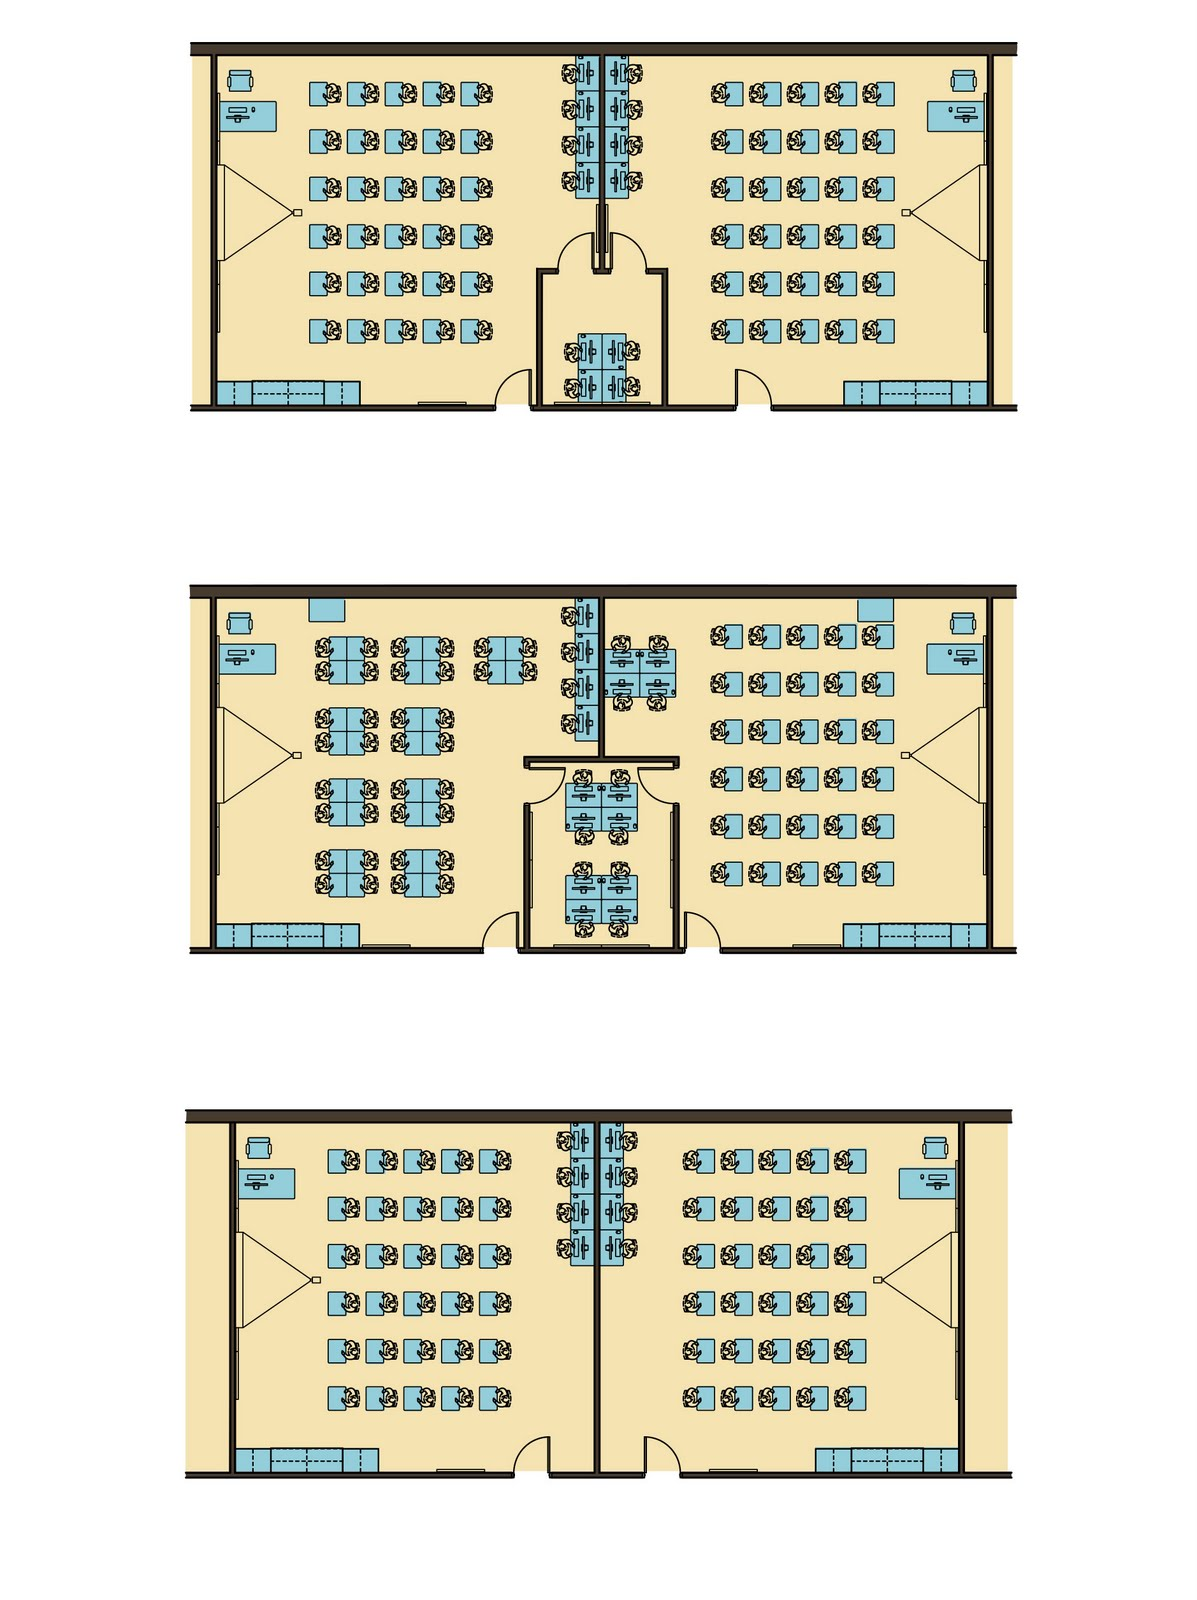 Classroom Layouts For High School ~ Bedford high school classroom layout options